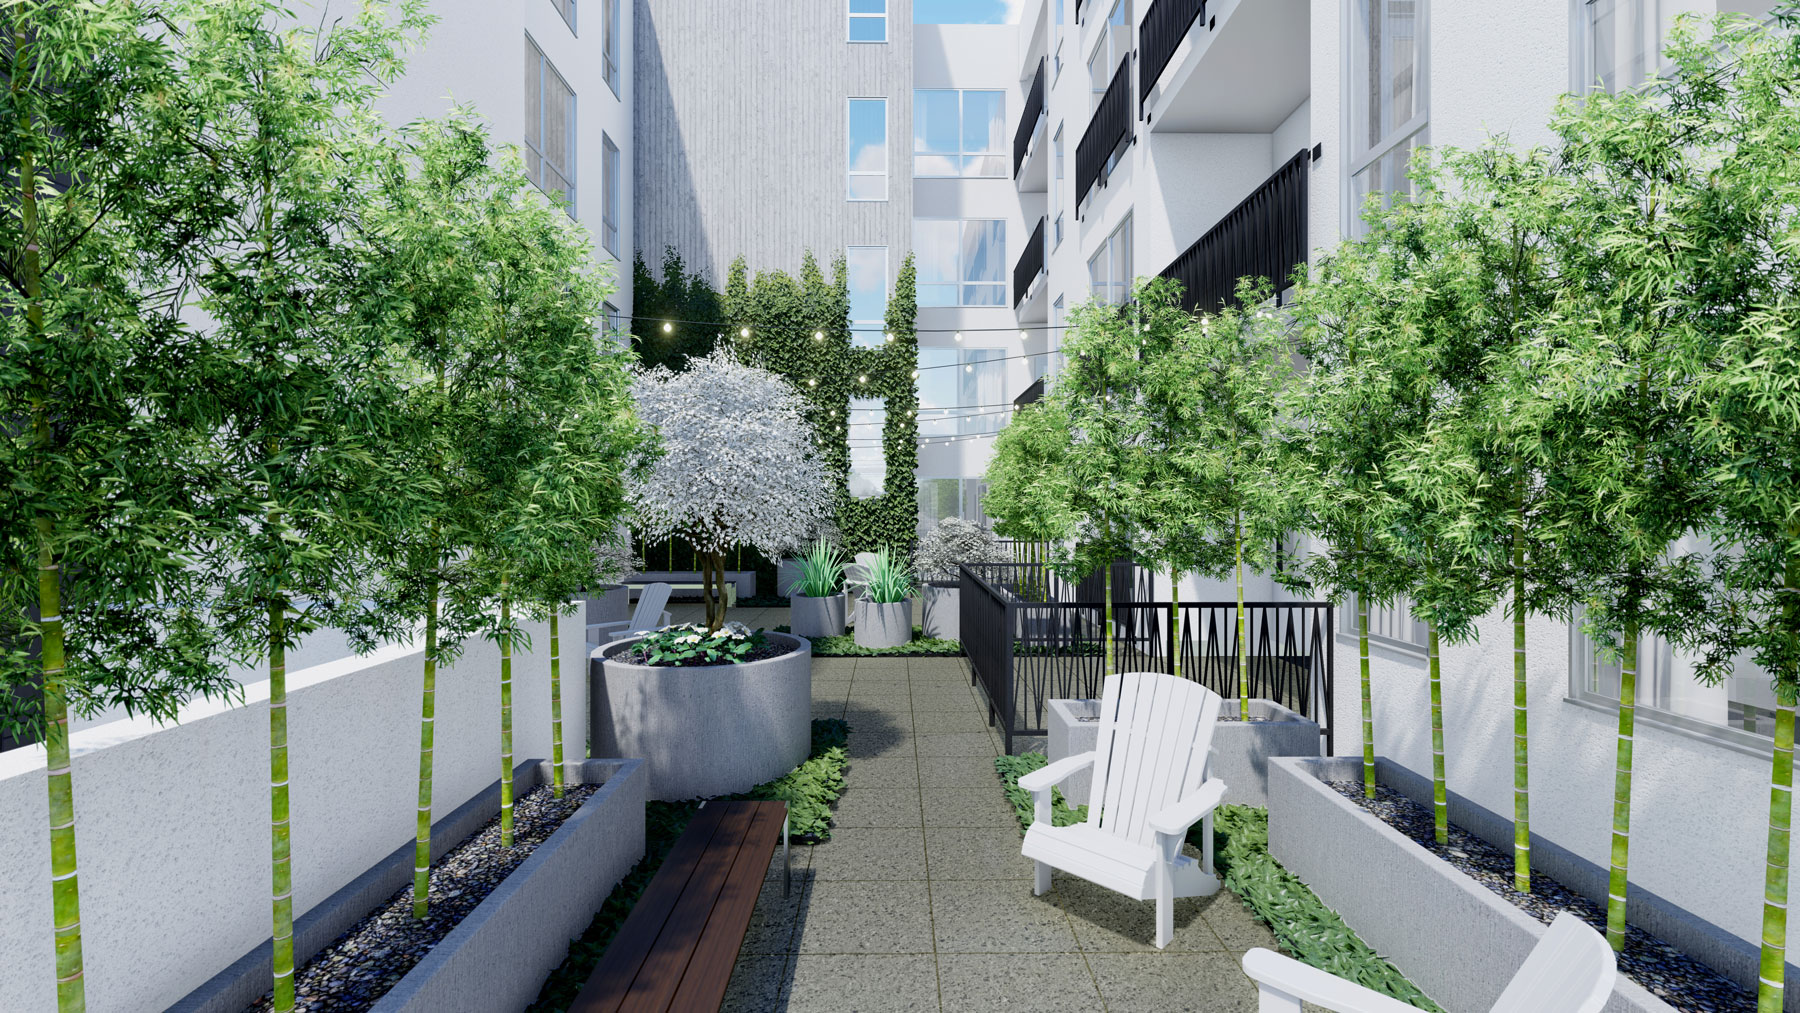 A rendering of the exterior courtyard of the building showing greenery and seating